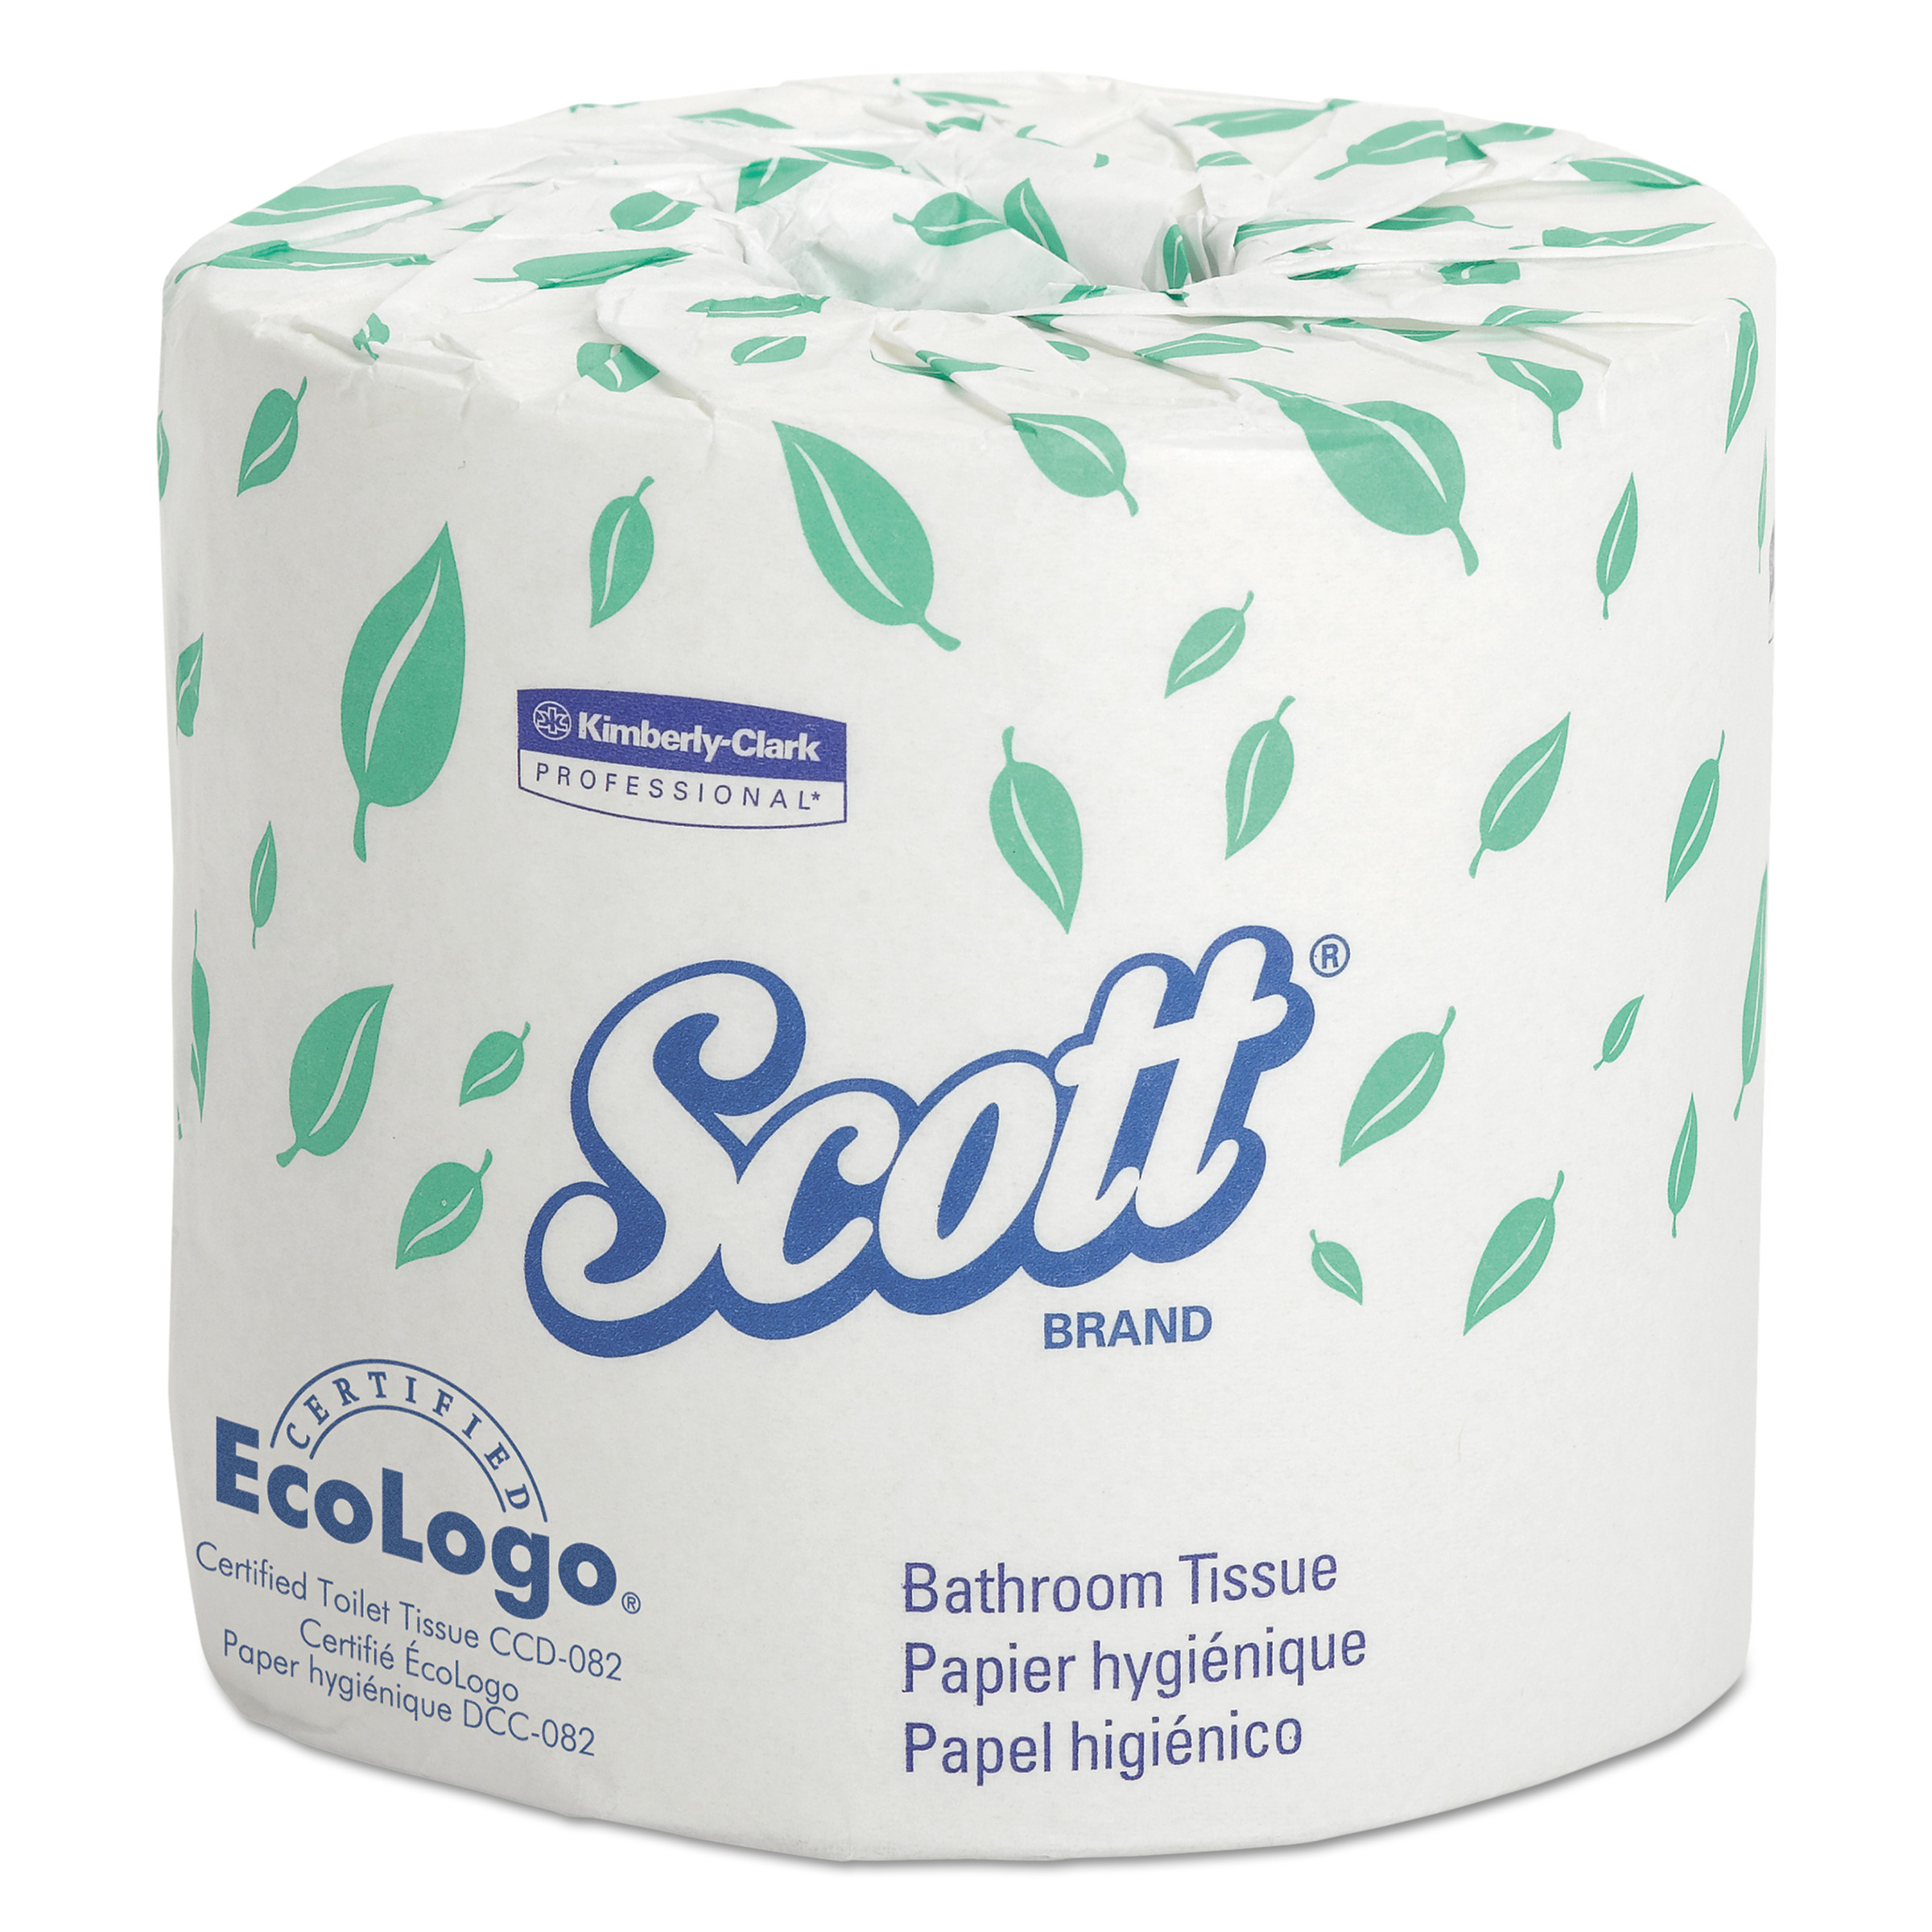 Kimberly-Clark Professional Scott Standard Two-Ply Bathroom Tissue, 550 sheets, 20 ct